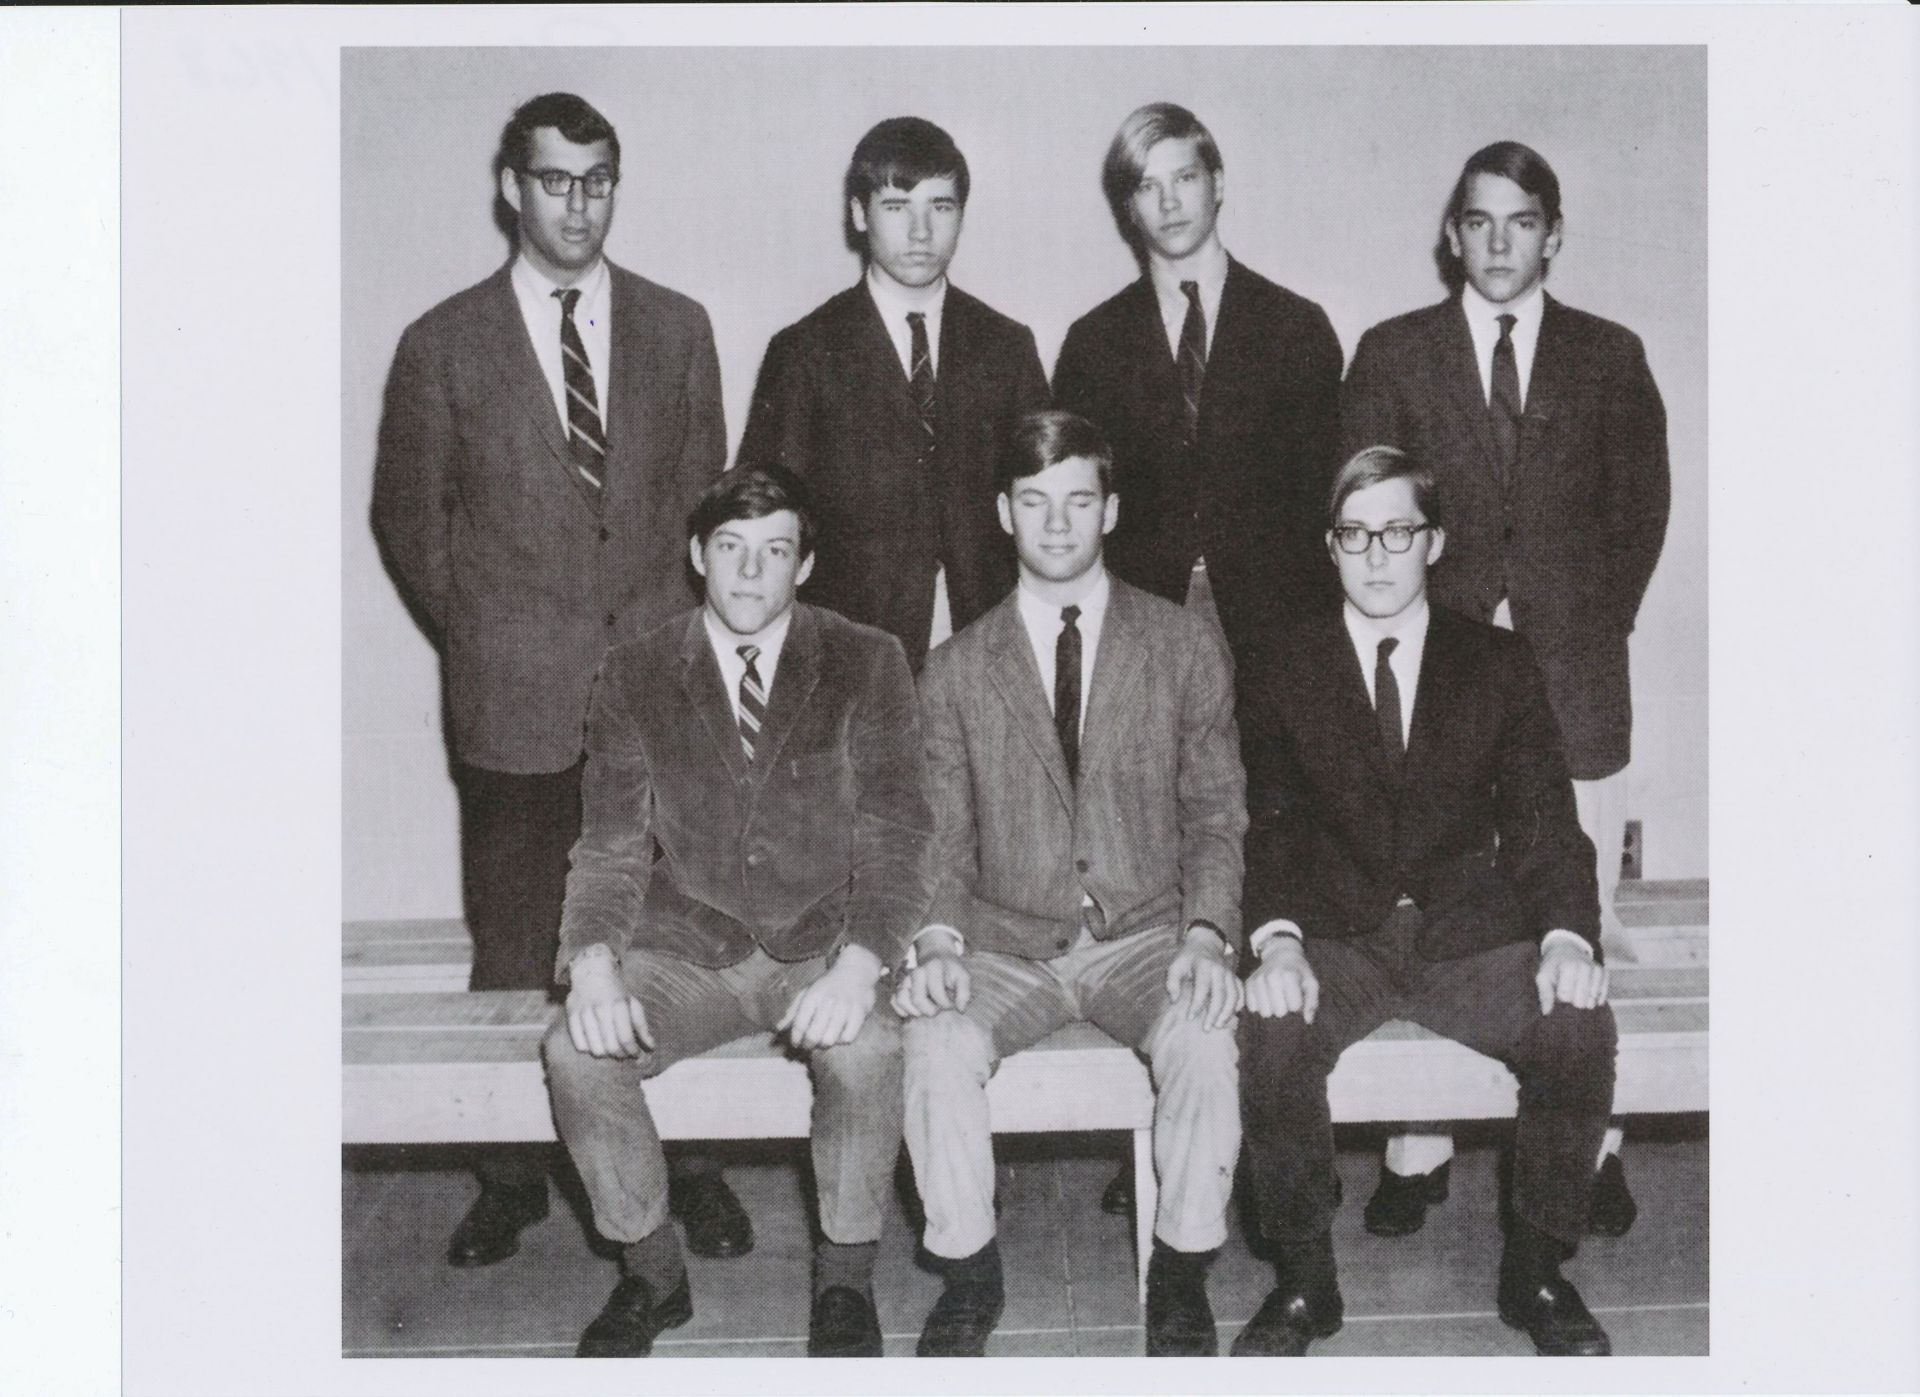 First Row; Richardson, Willett, Pastuhov,  Second Row: Mr. Bates, Burley, Siebert, Carlhian